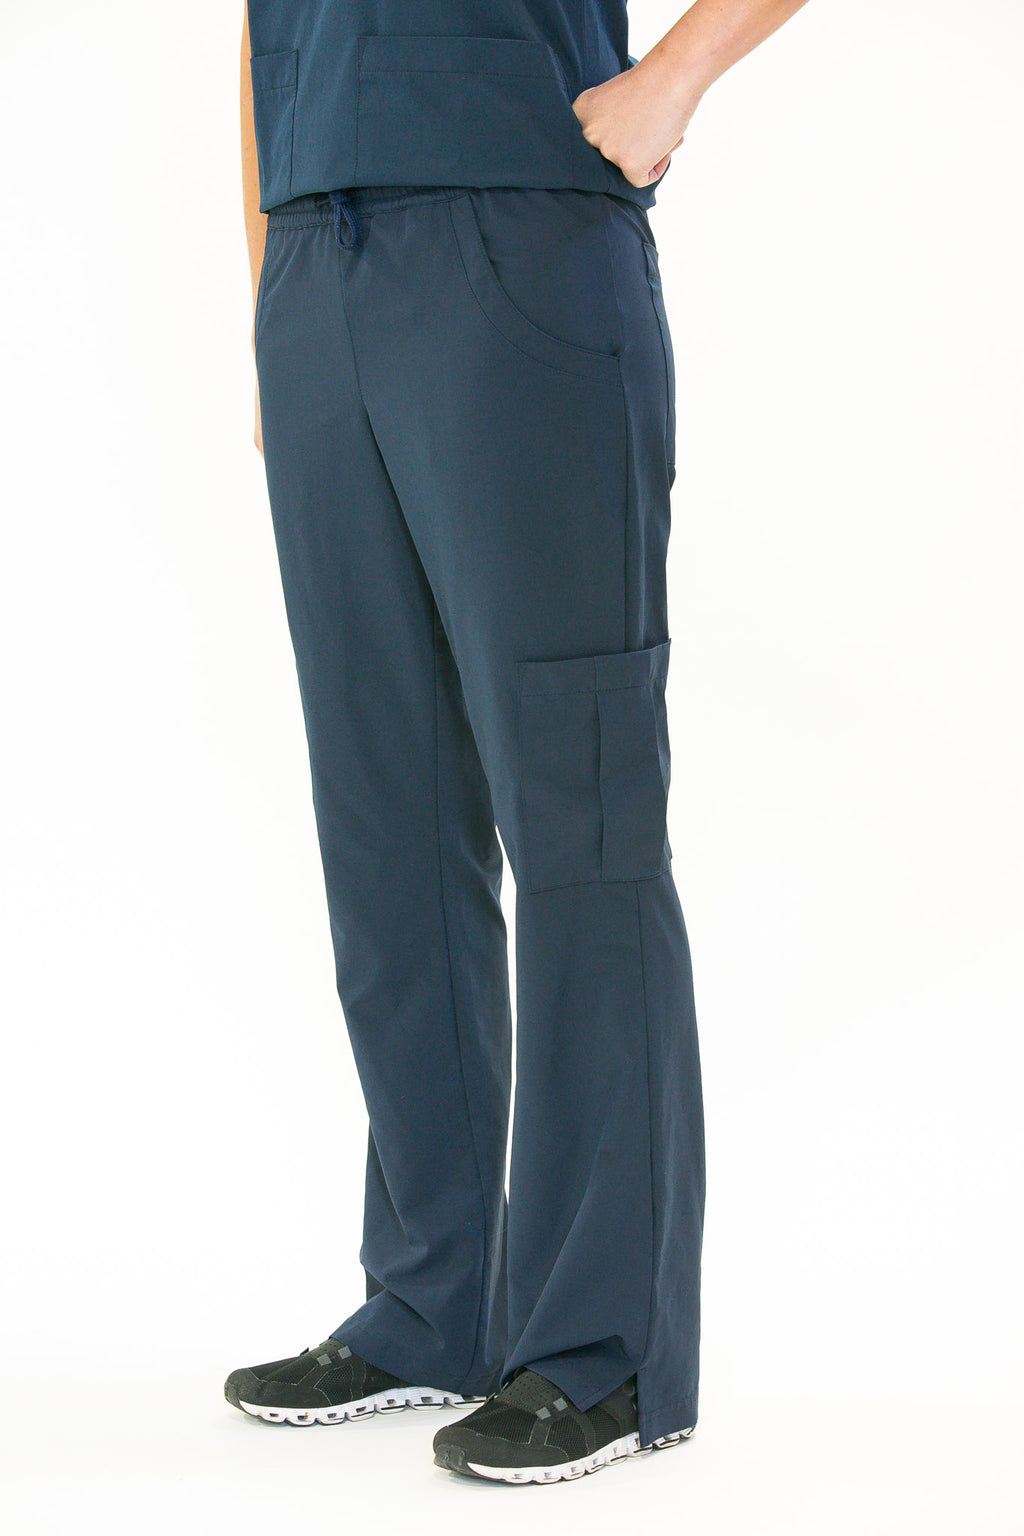 Wilmington Wicking Women Cargo Scrub Pant